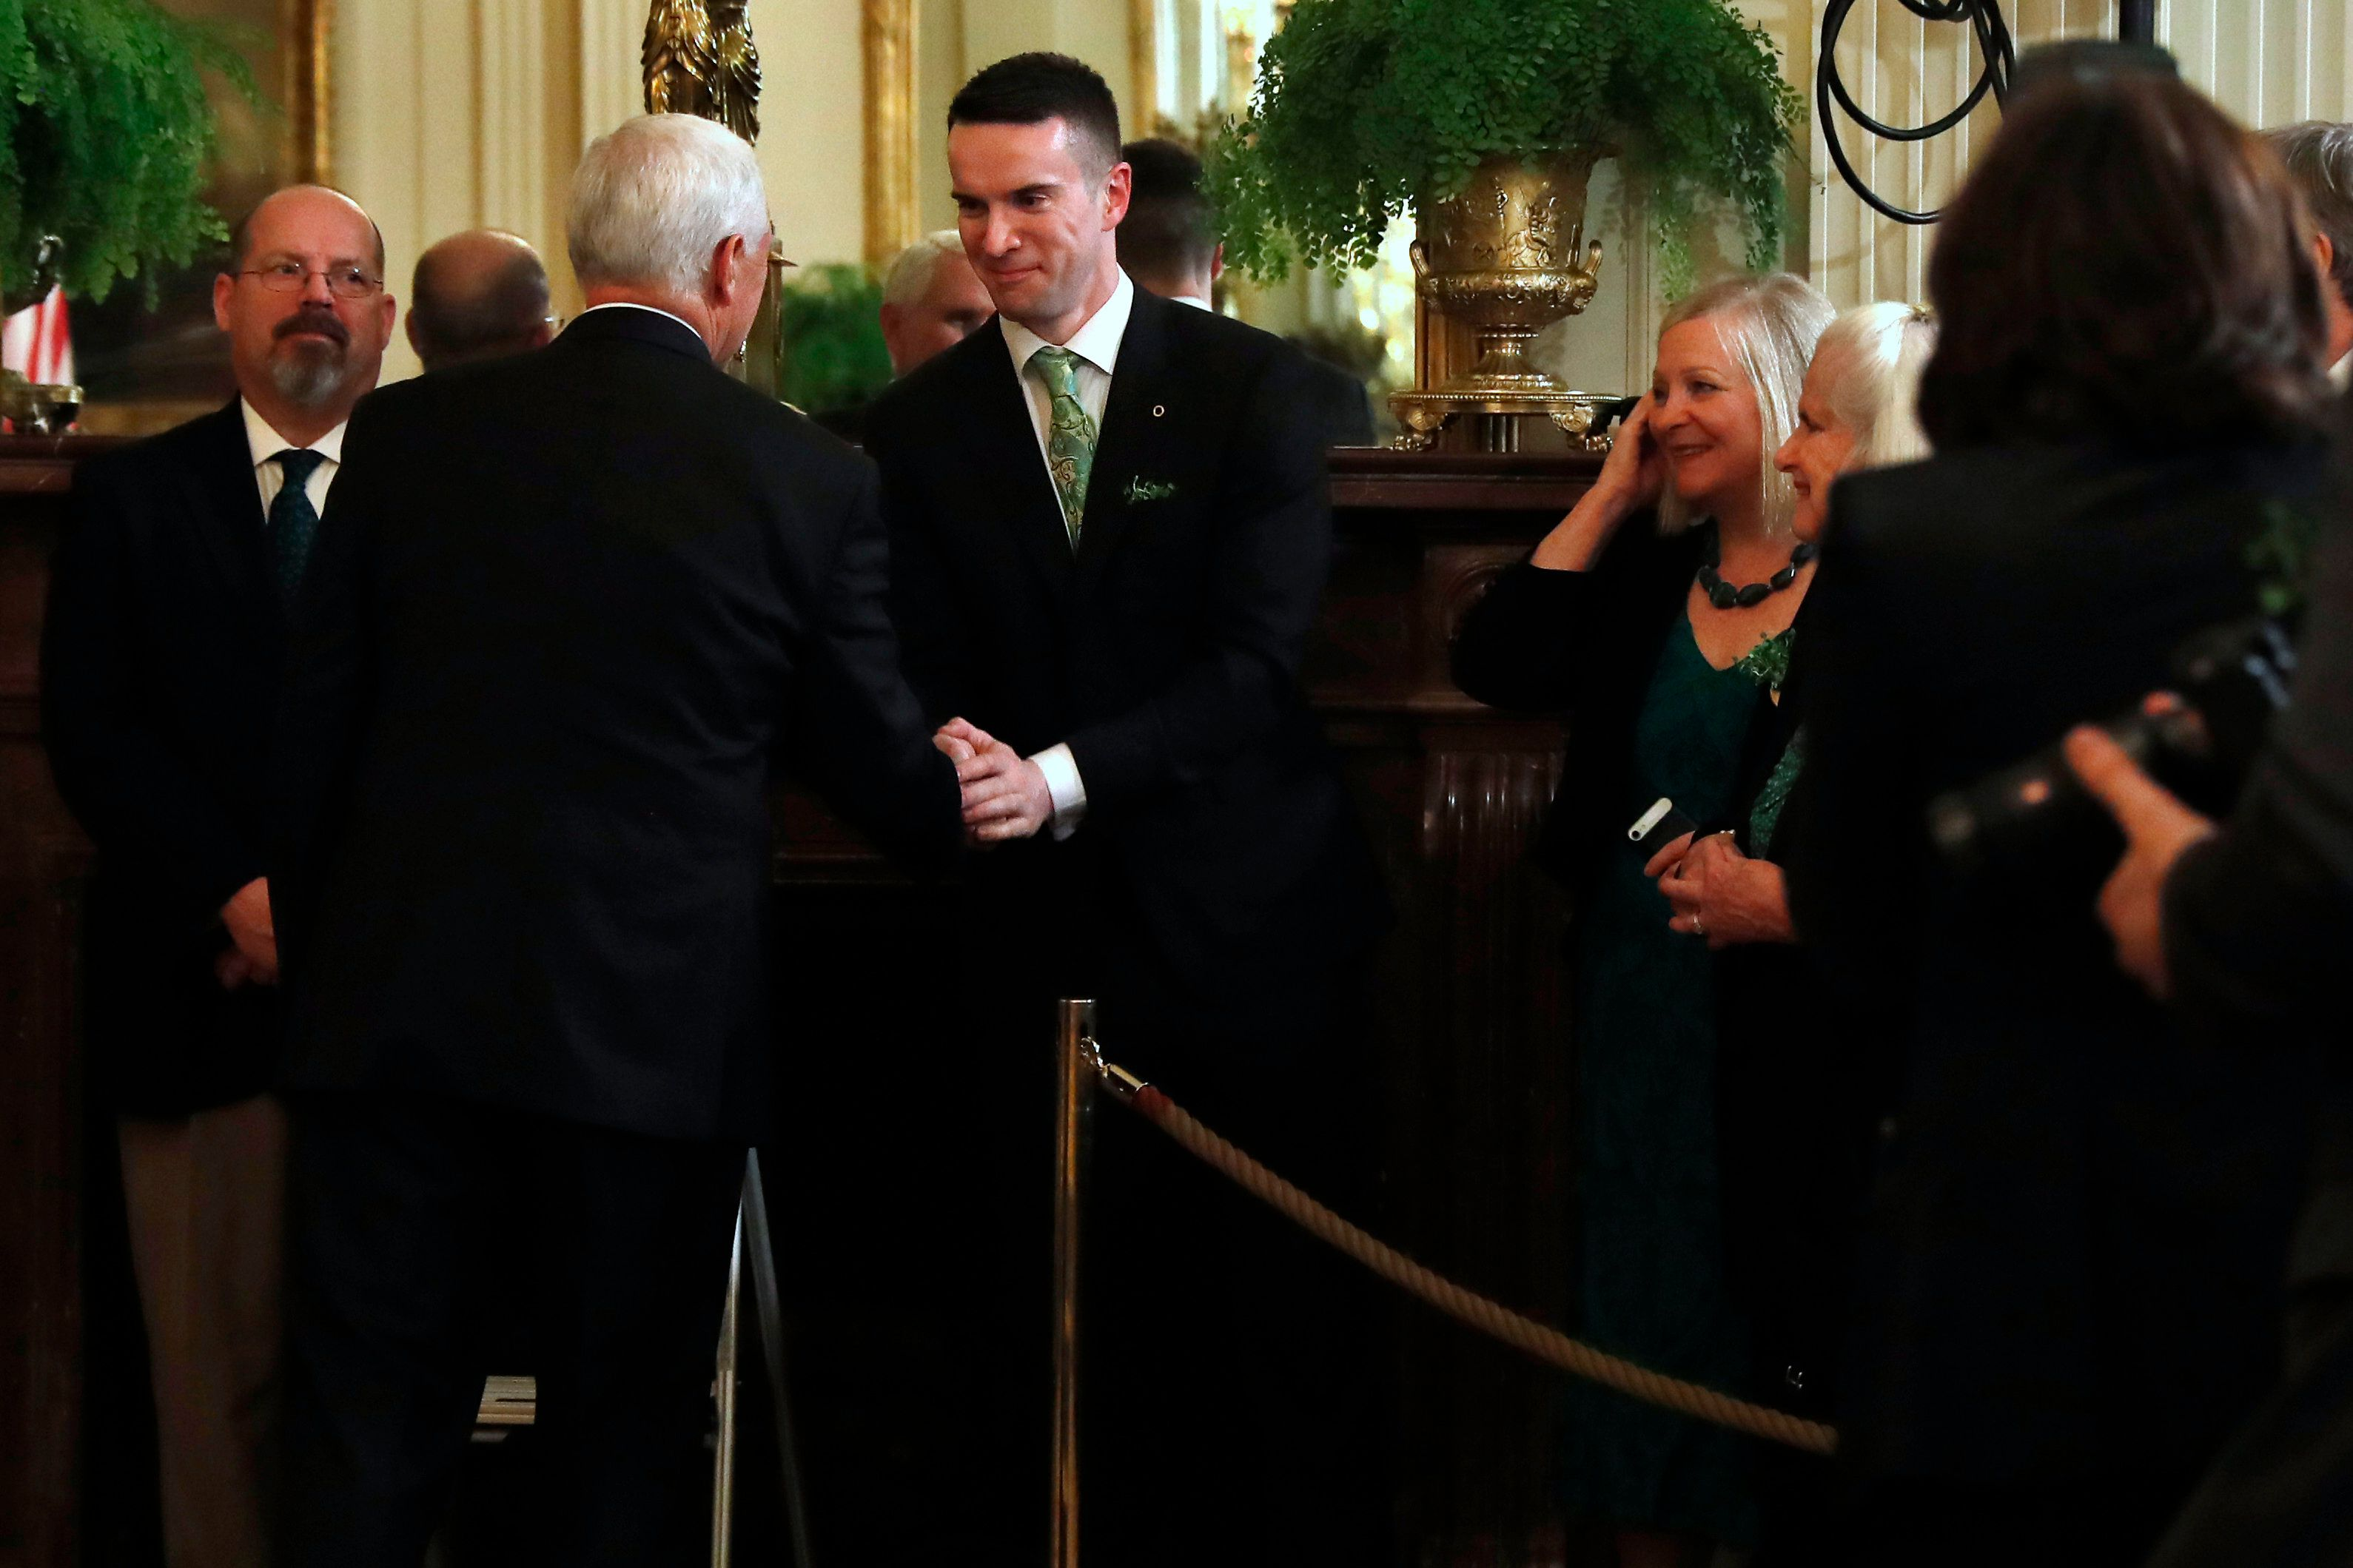 Ireland's Leader Shows Up With His Boyfriend At Mike Pence's